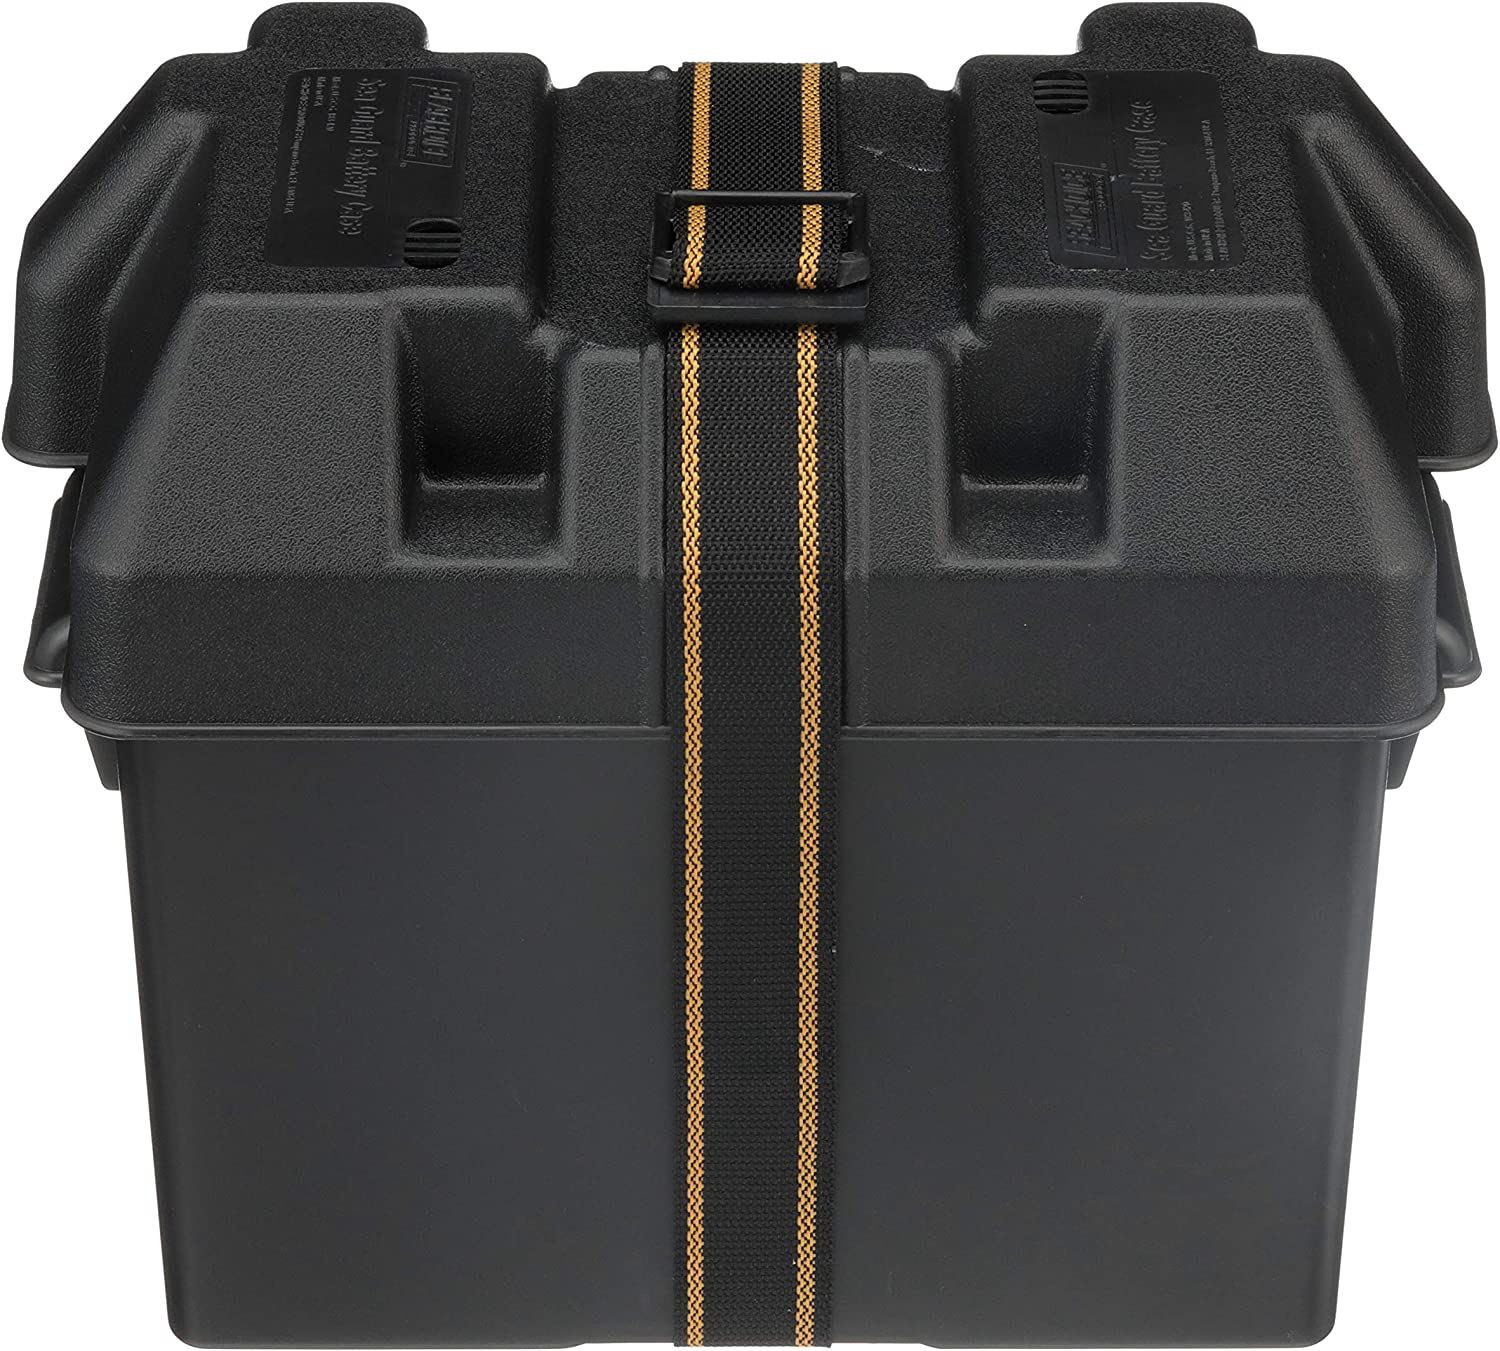 Seachoice 22080 USCG-Approved Marine Group 27 Series Standard Battery Box with Strap & Mounting Kit